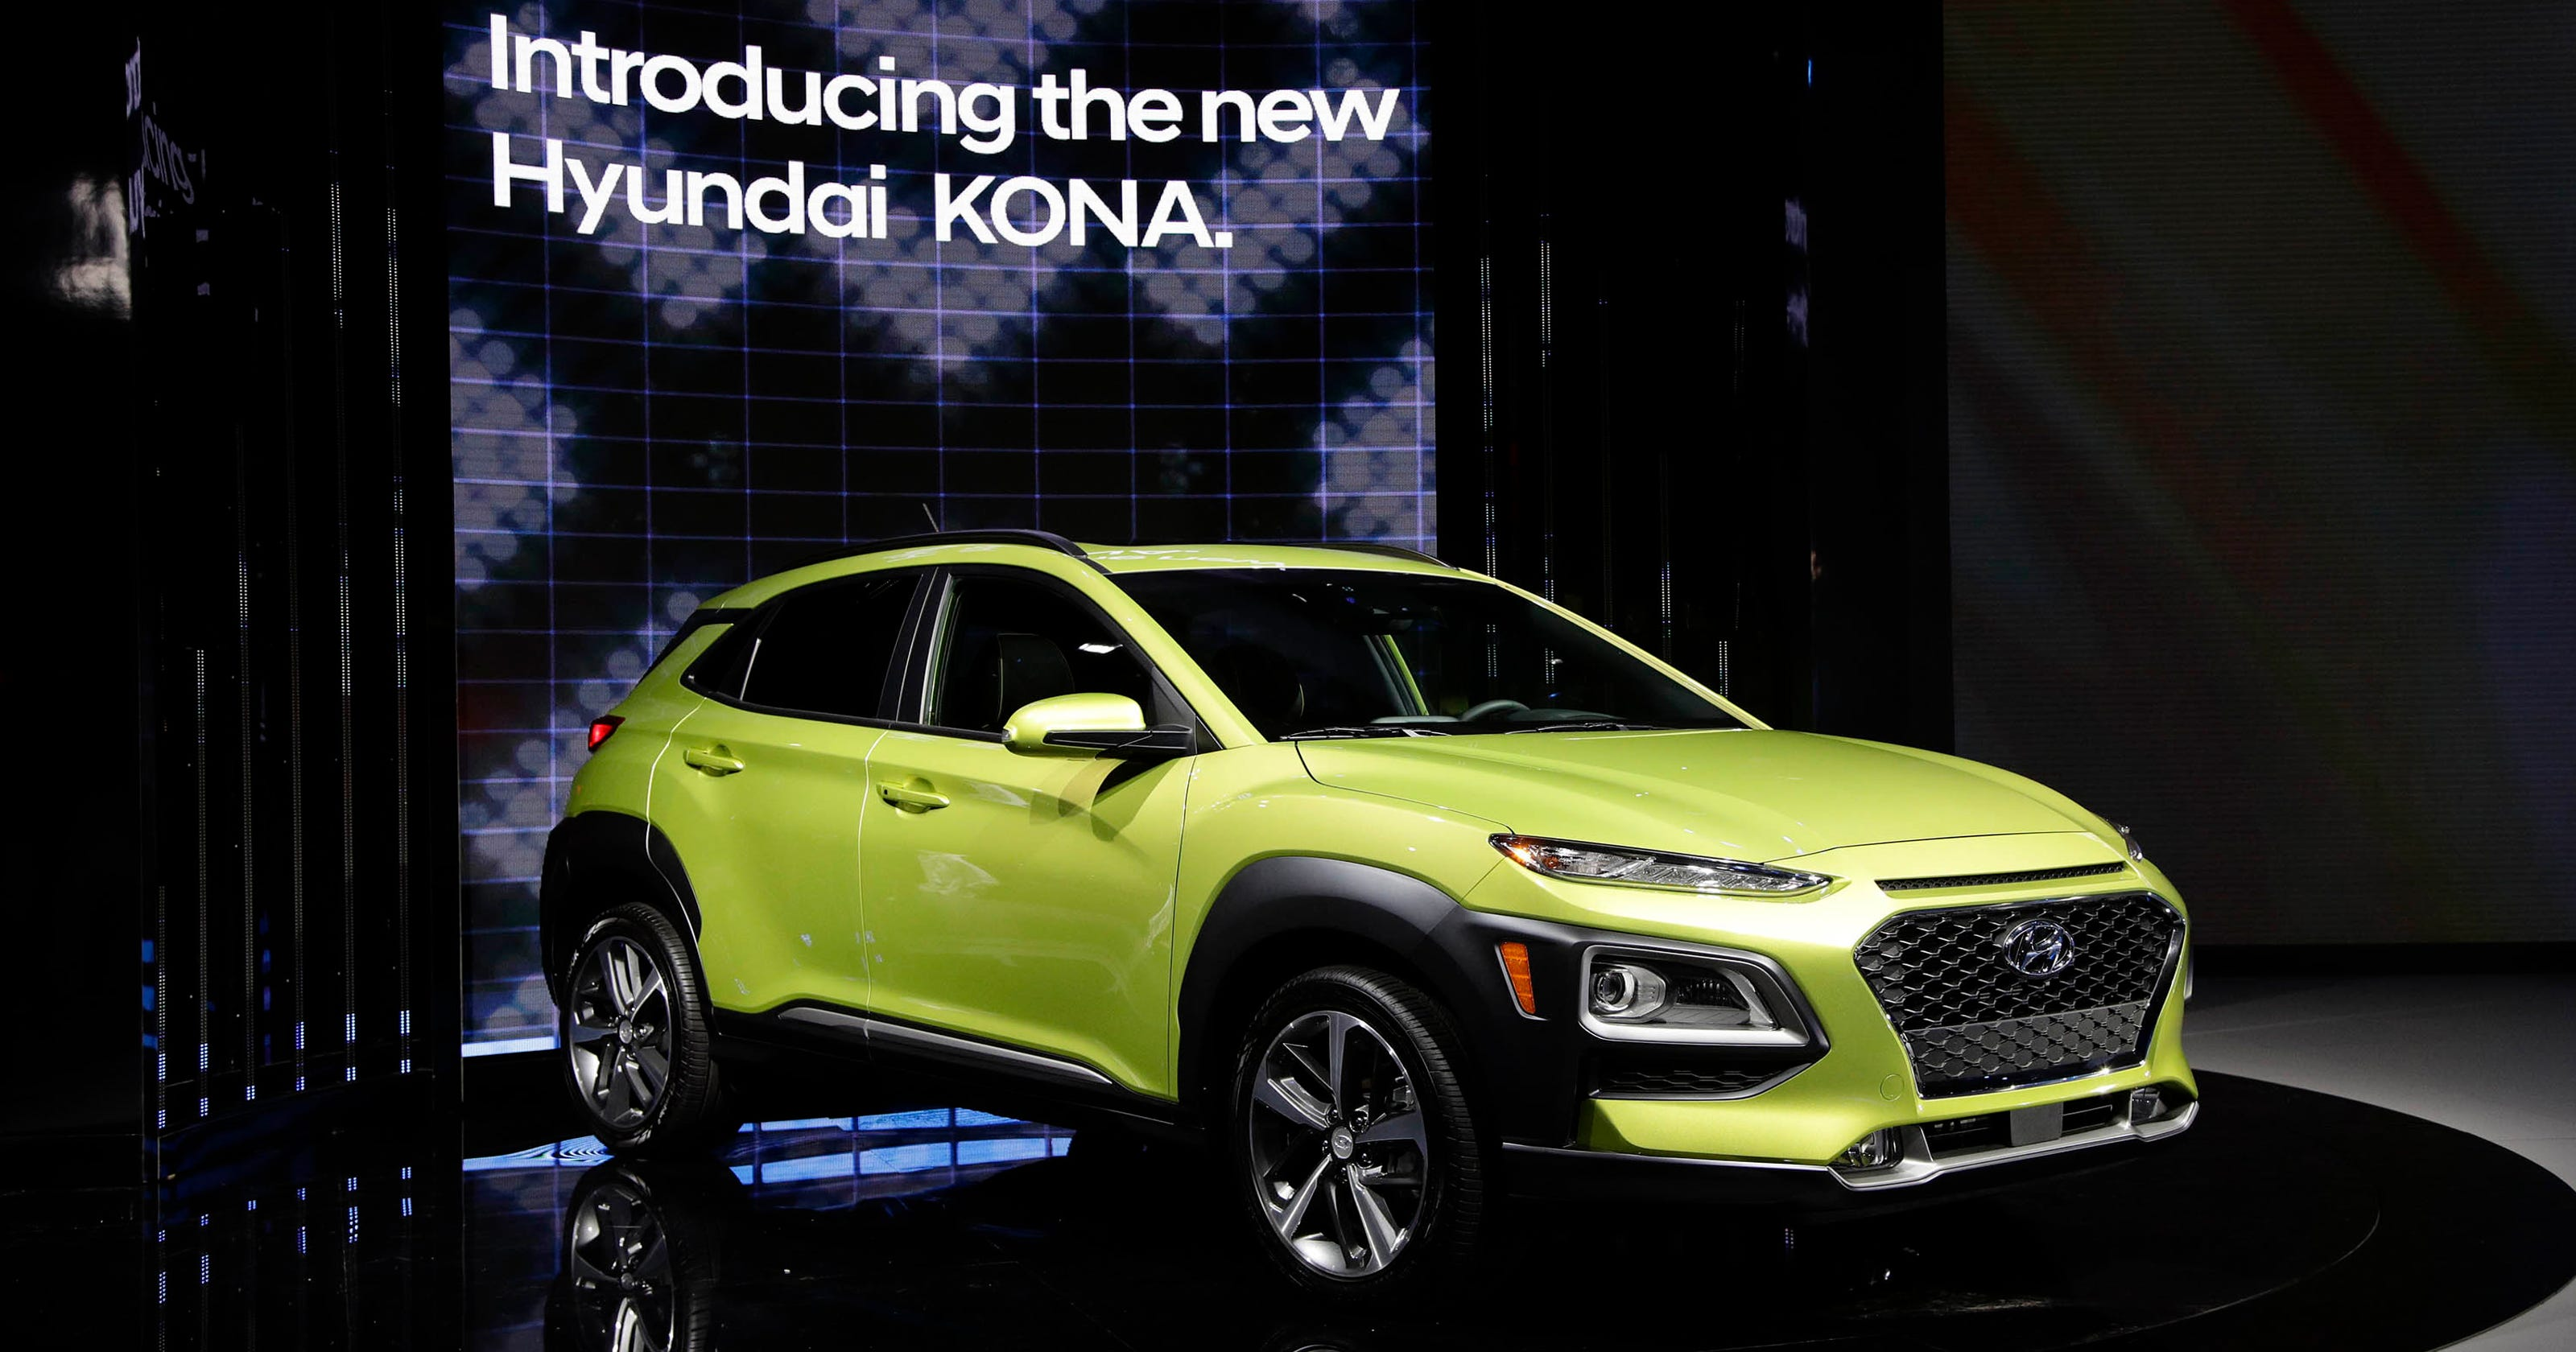 Hyundai Reveals Kona Crossover At Los Angeles Auto Show - Hyundai car show